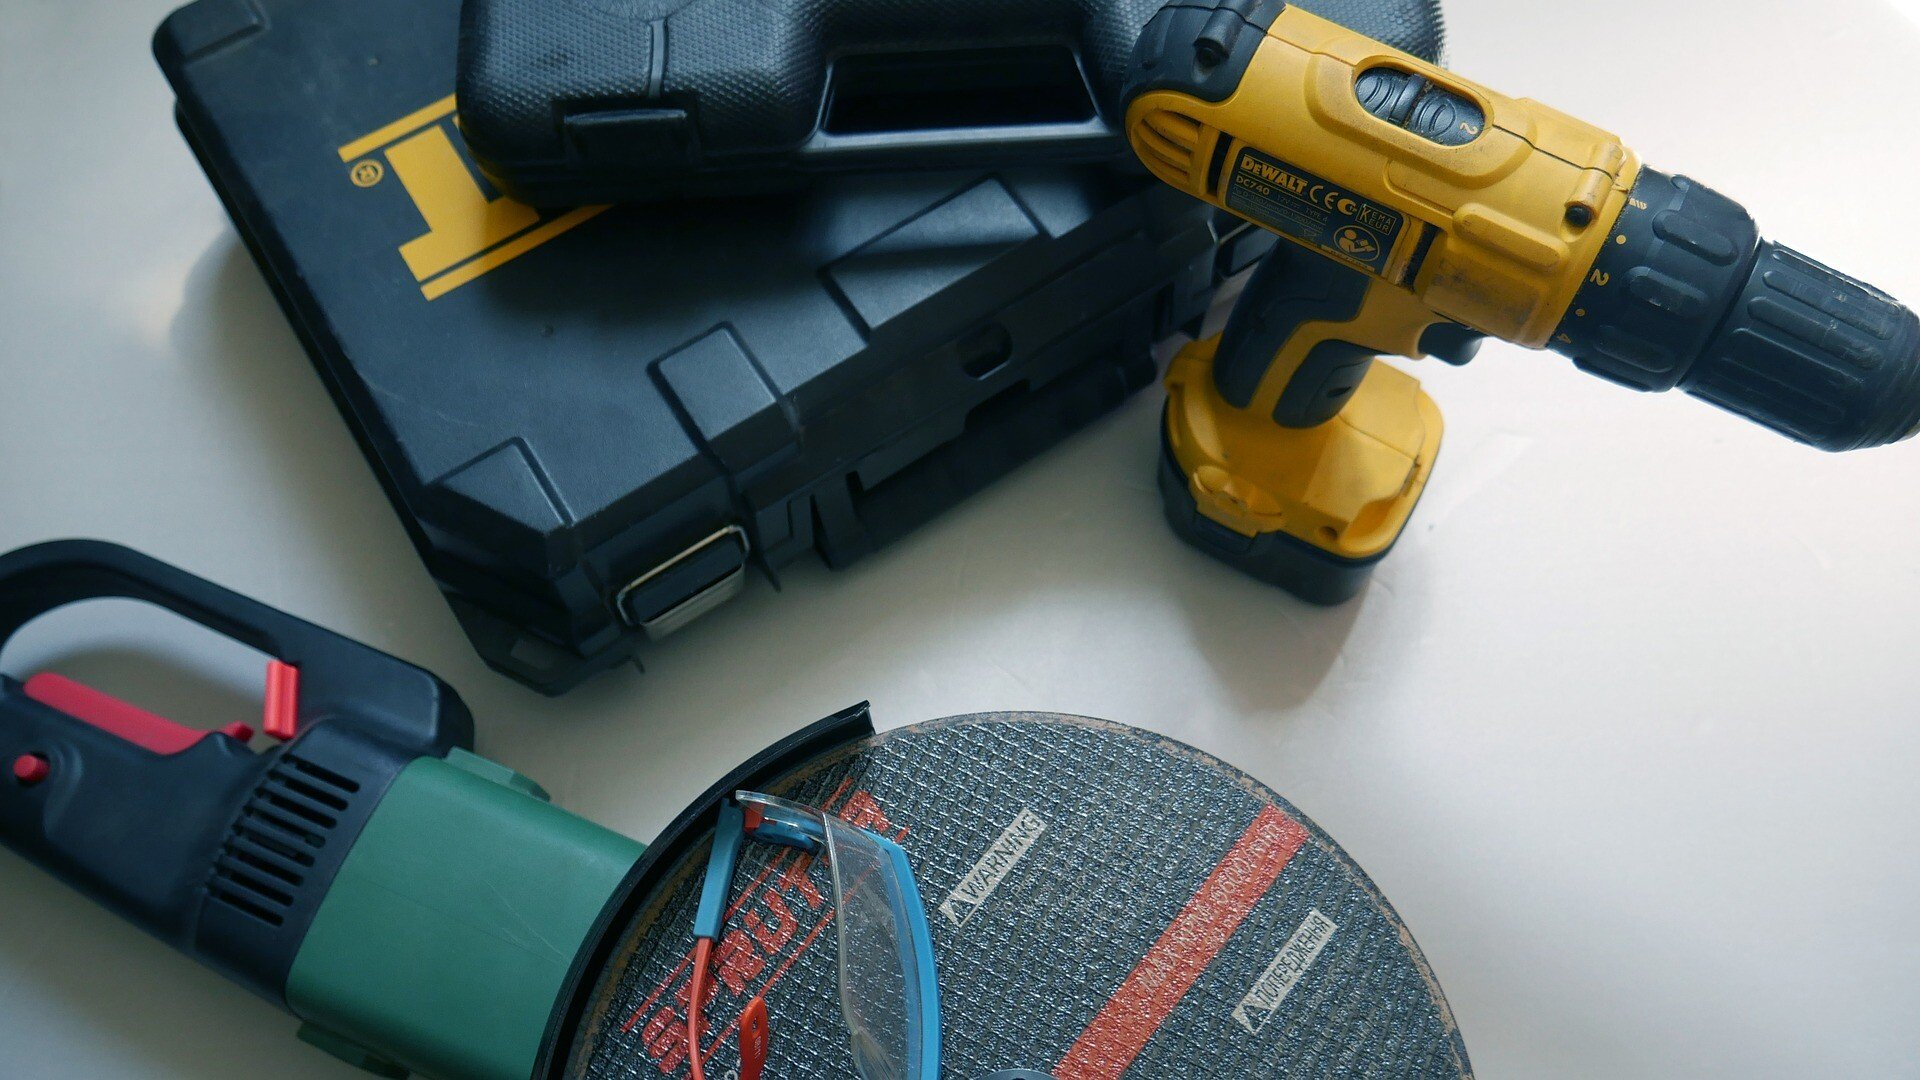 Must-Have Tools for Advanced DIY Projects and Home Repairs 1